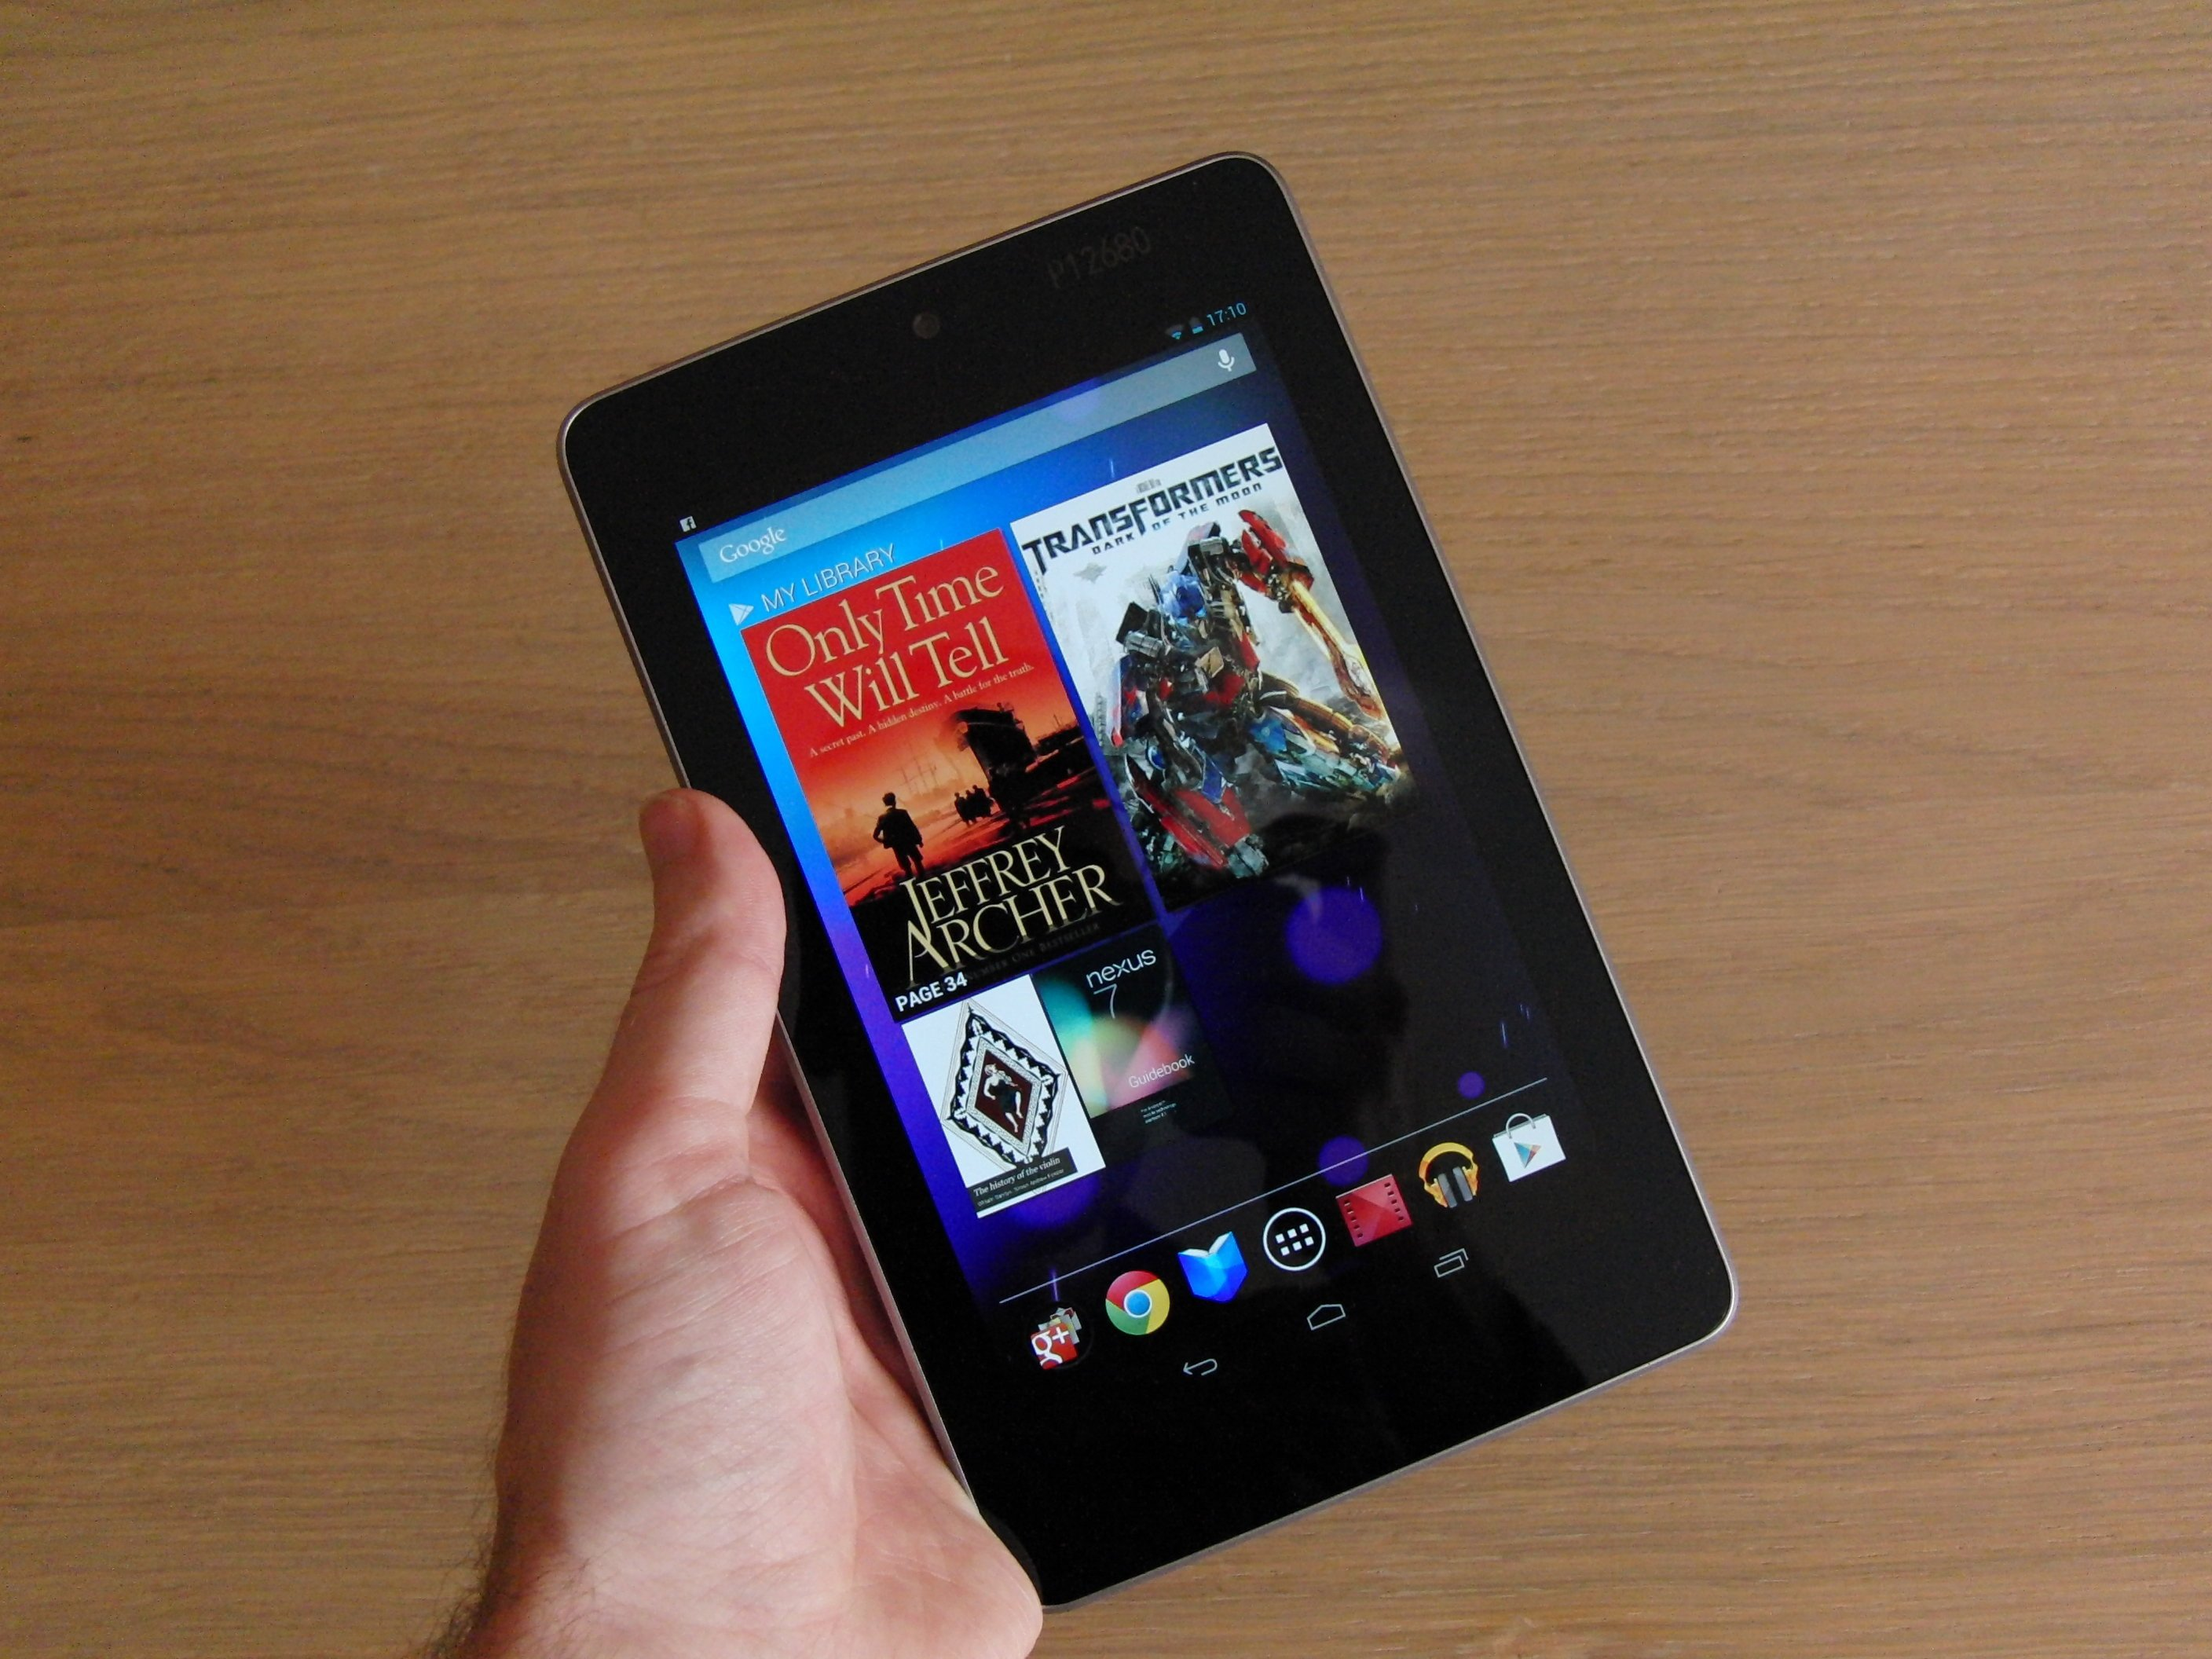 Google Cardboard for Nexus 7 Google S Nexus 7 S A Review From Flubit